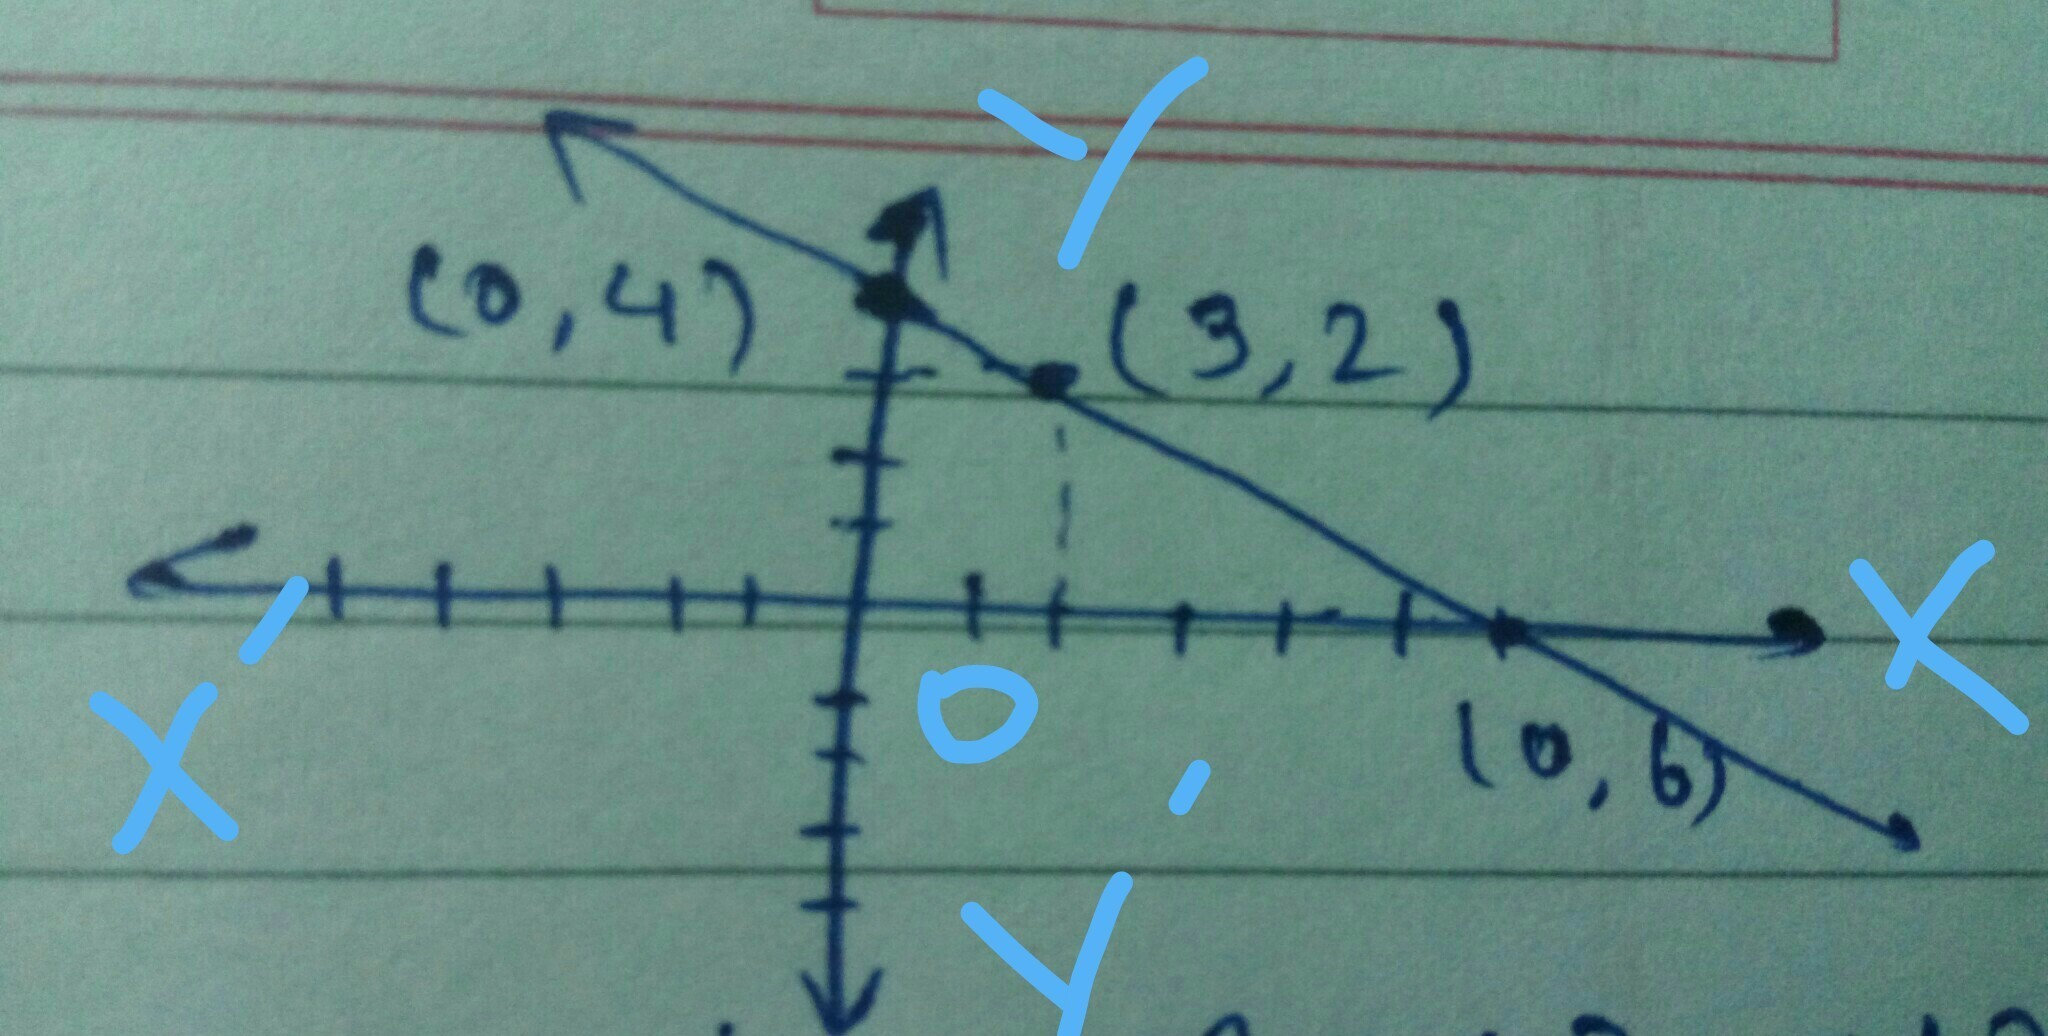 Draw A Graph Of A Linear Equation 2x 3y 12 What